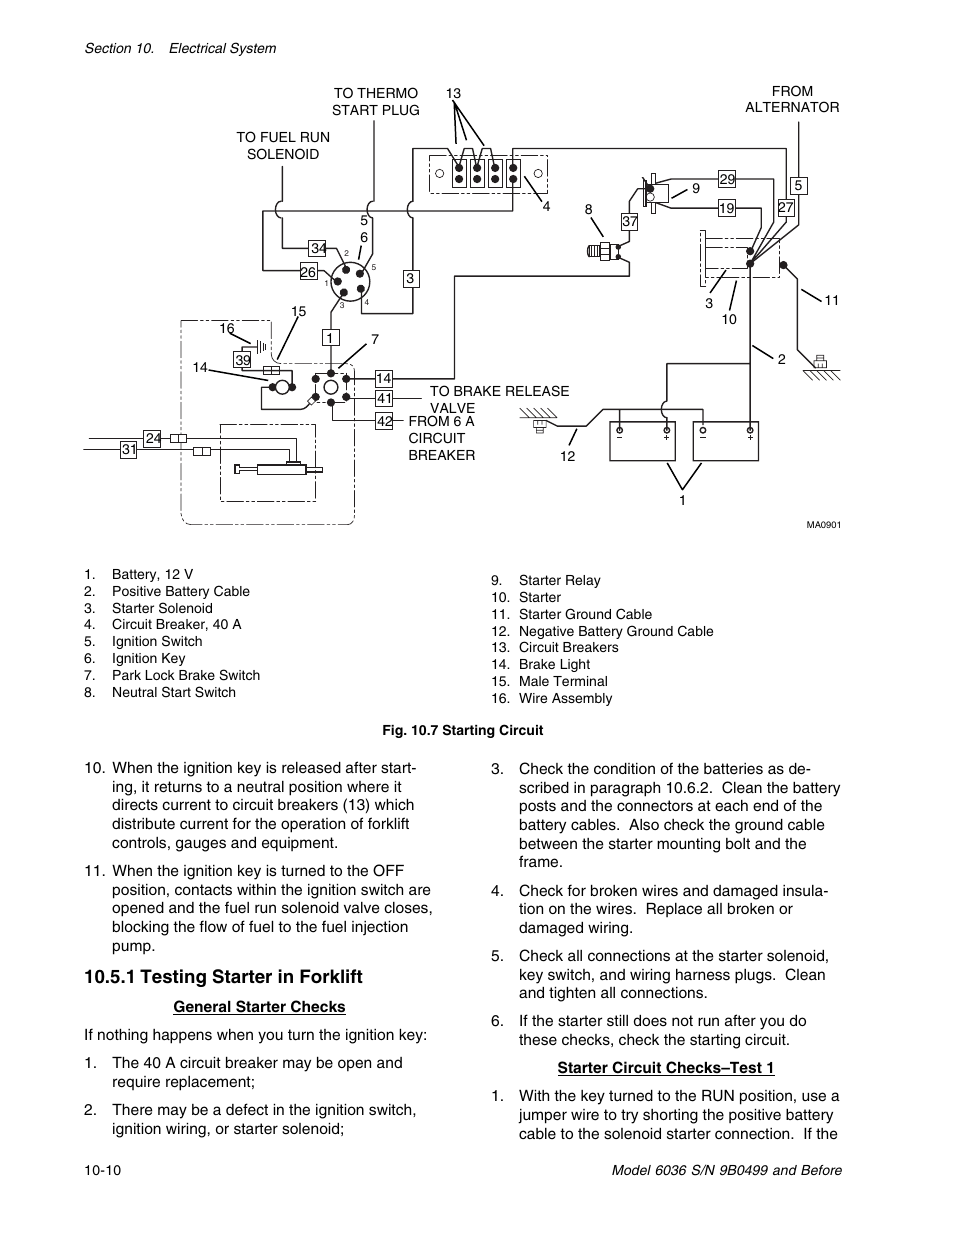 1 Testing Starter In Forklift Skytrak 6036 Service Manual User 12 Volt Solenoid Wiring Diagram 4 Post Page 204 280